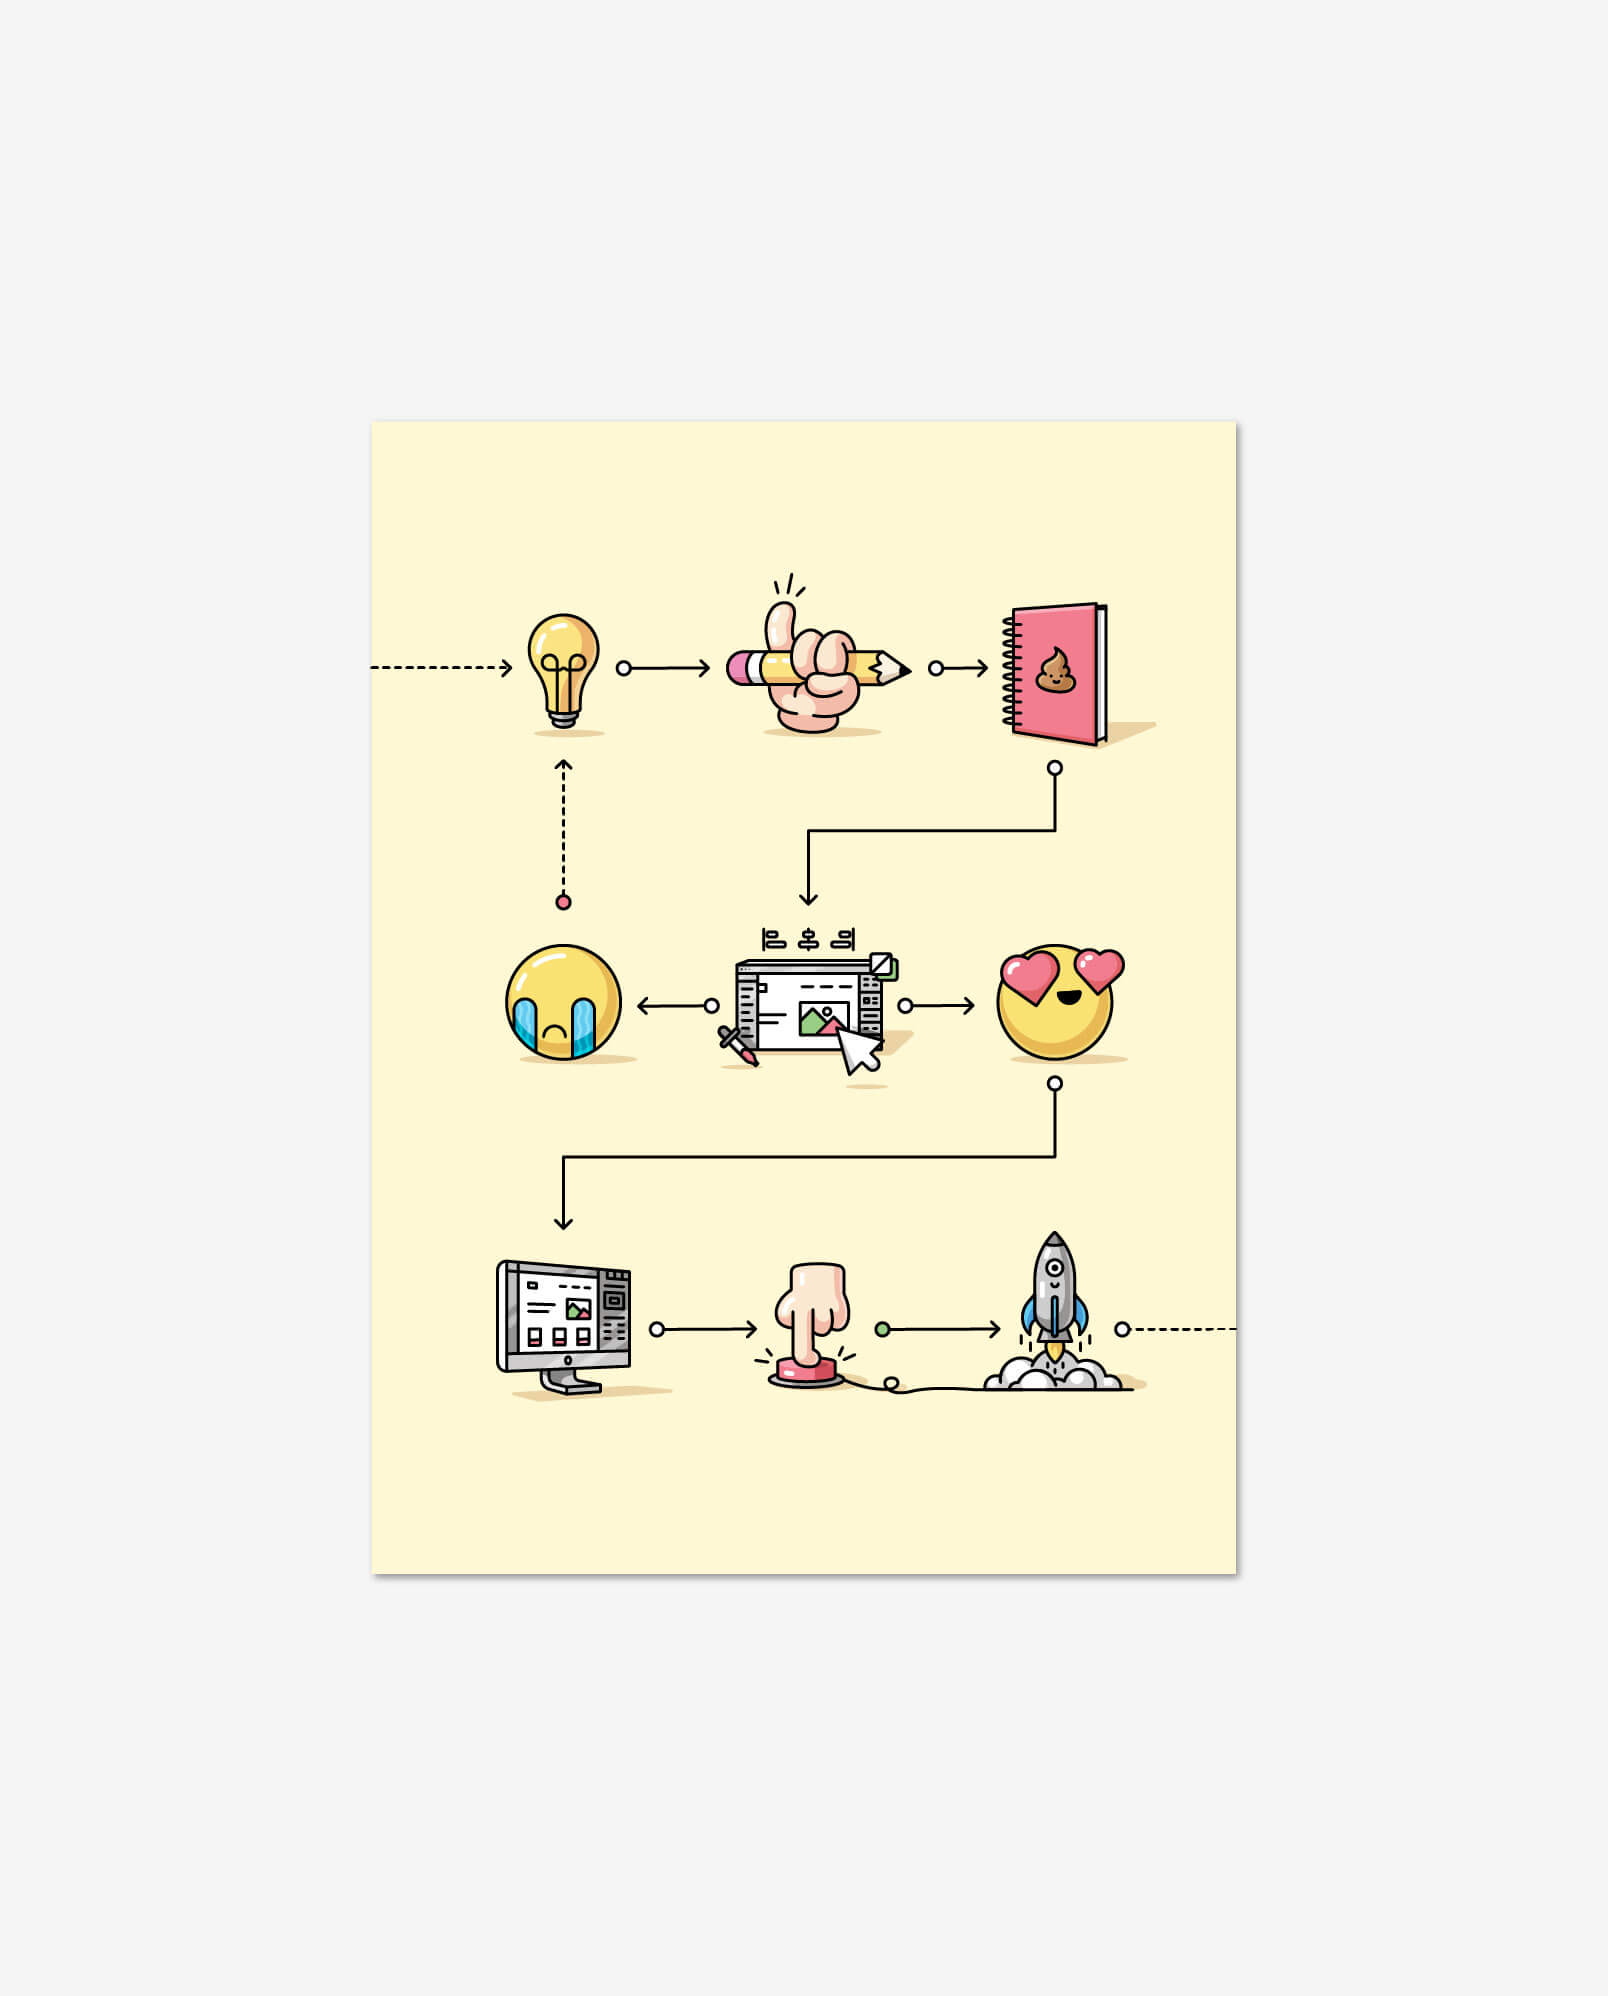 A pale yellow poster with a series of 9 illustrated icons that are connected with consecutive arrows conveying the visual development process with a lightbulb, pencil in hand, a notebook, a crying emoji, a design tool interface, a heart eye emoji, a desktop Webflow interface, a finger pushing a red button, and finally a rocket taking off.